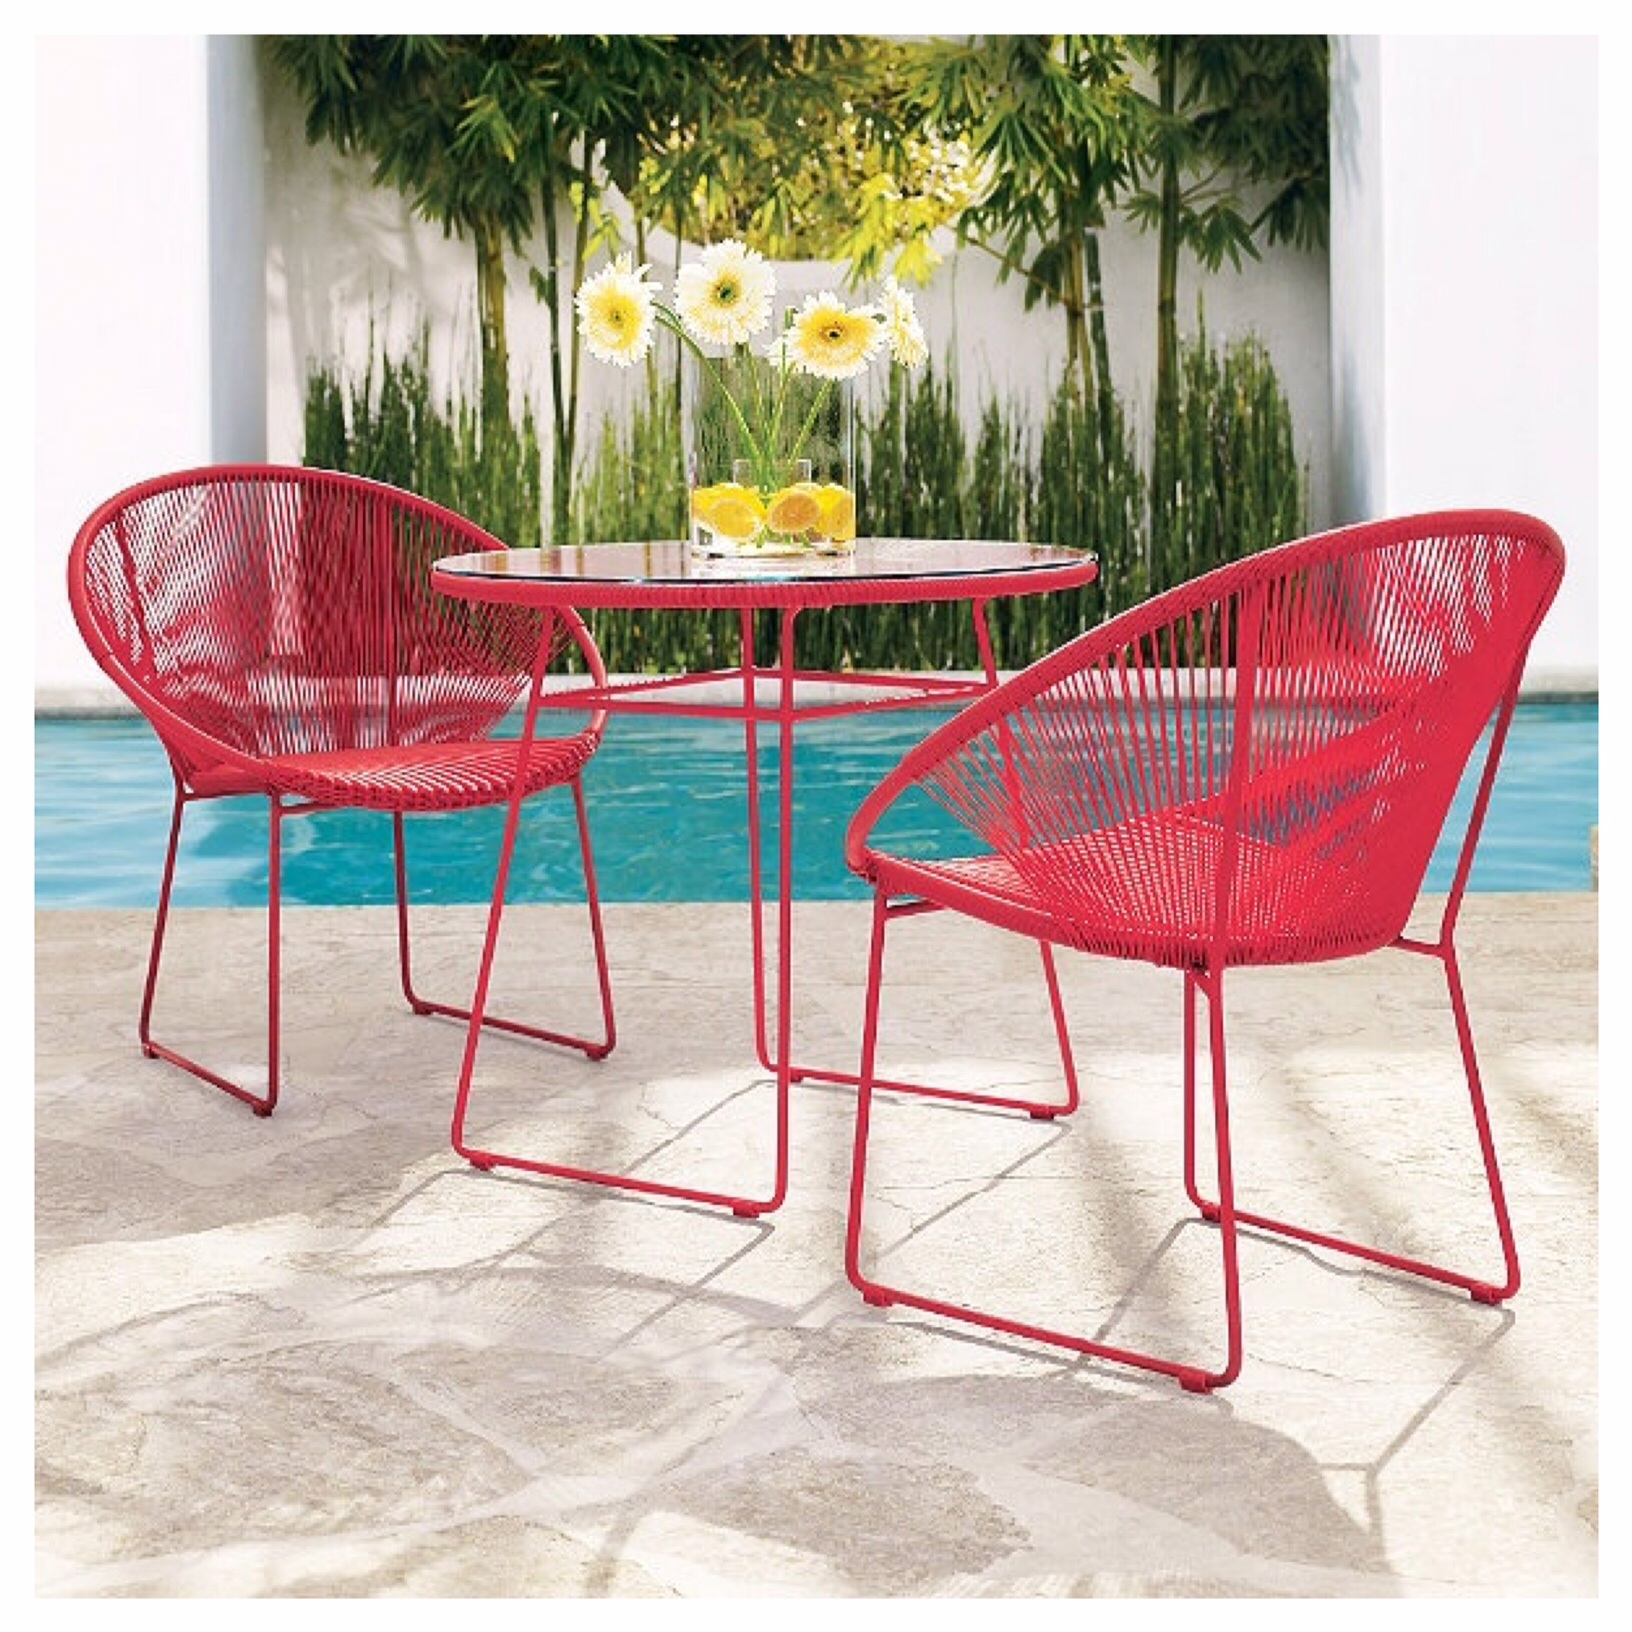 Shopping guide muebles para patios y terrazas bujaren for Muebles para porches